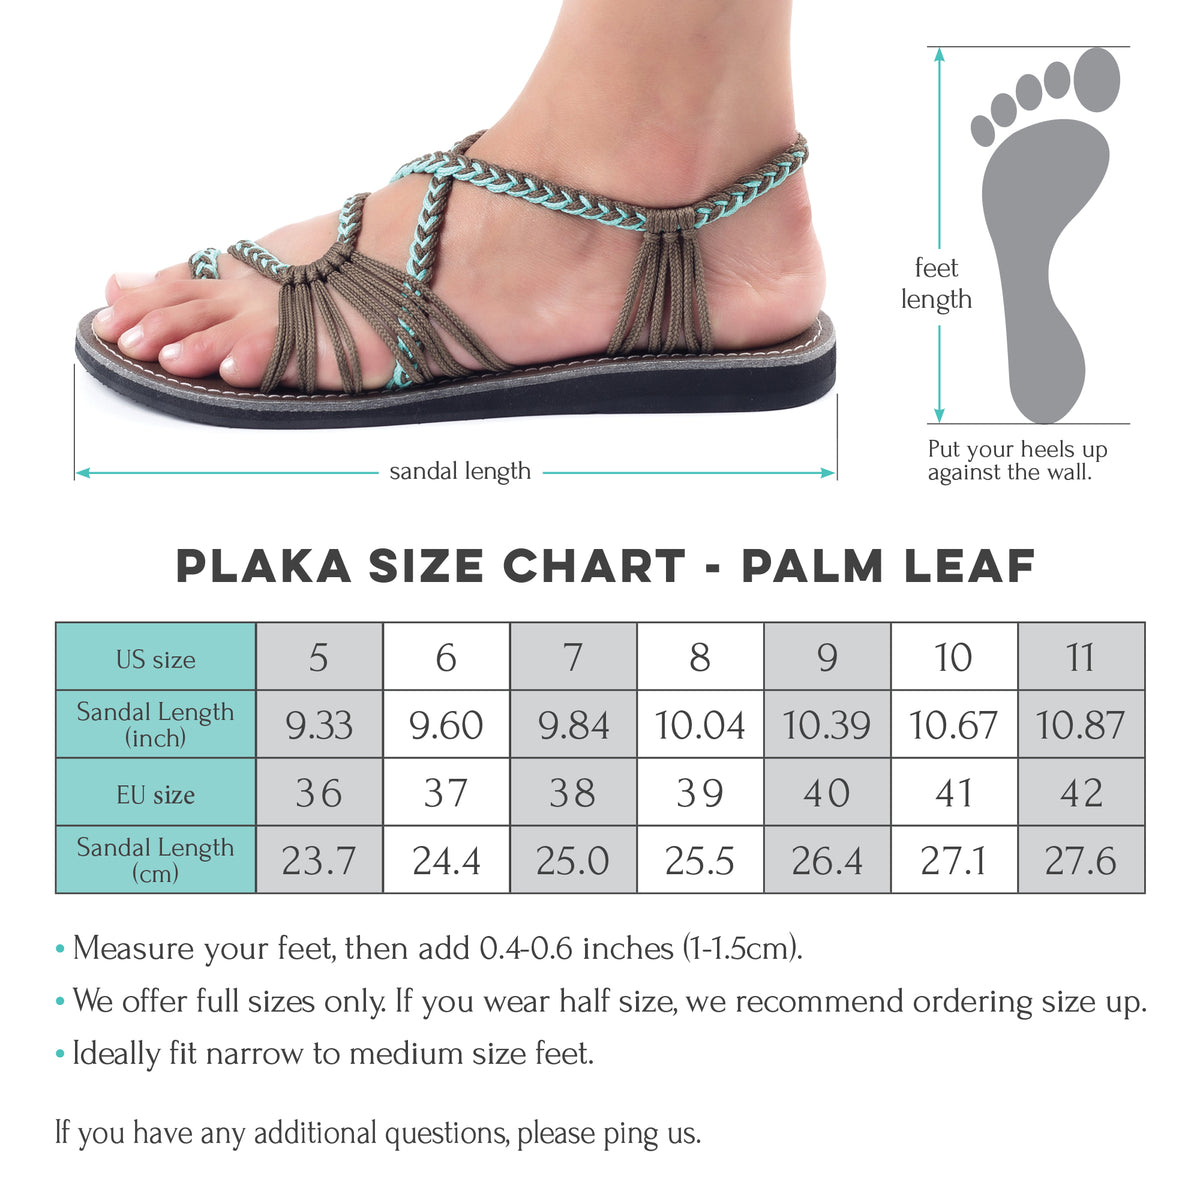 Palm Leaf Flat Women's Sandals | Tawny